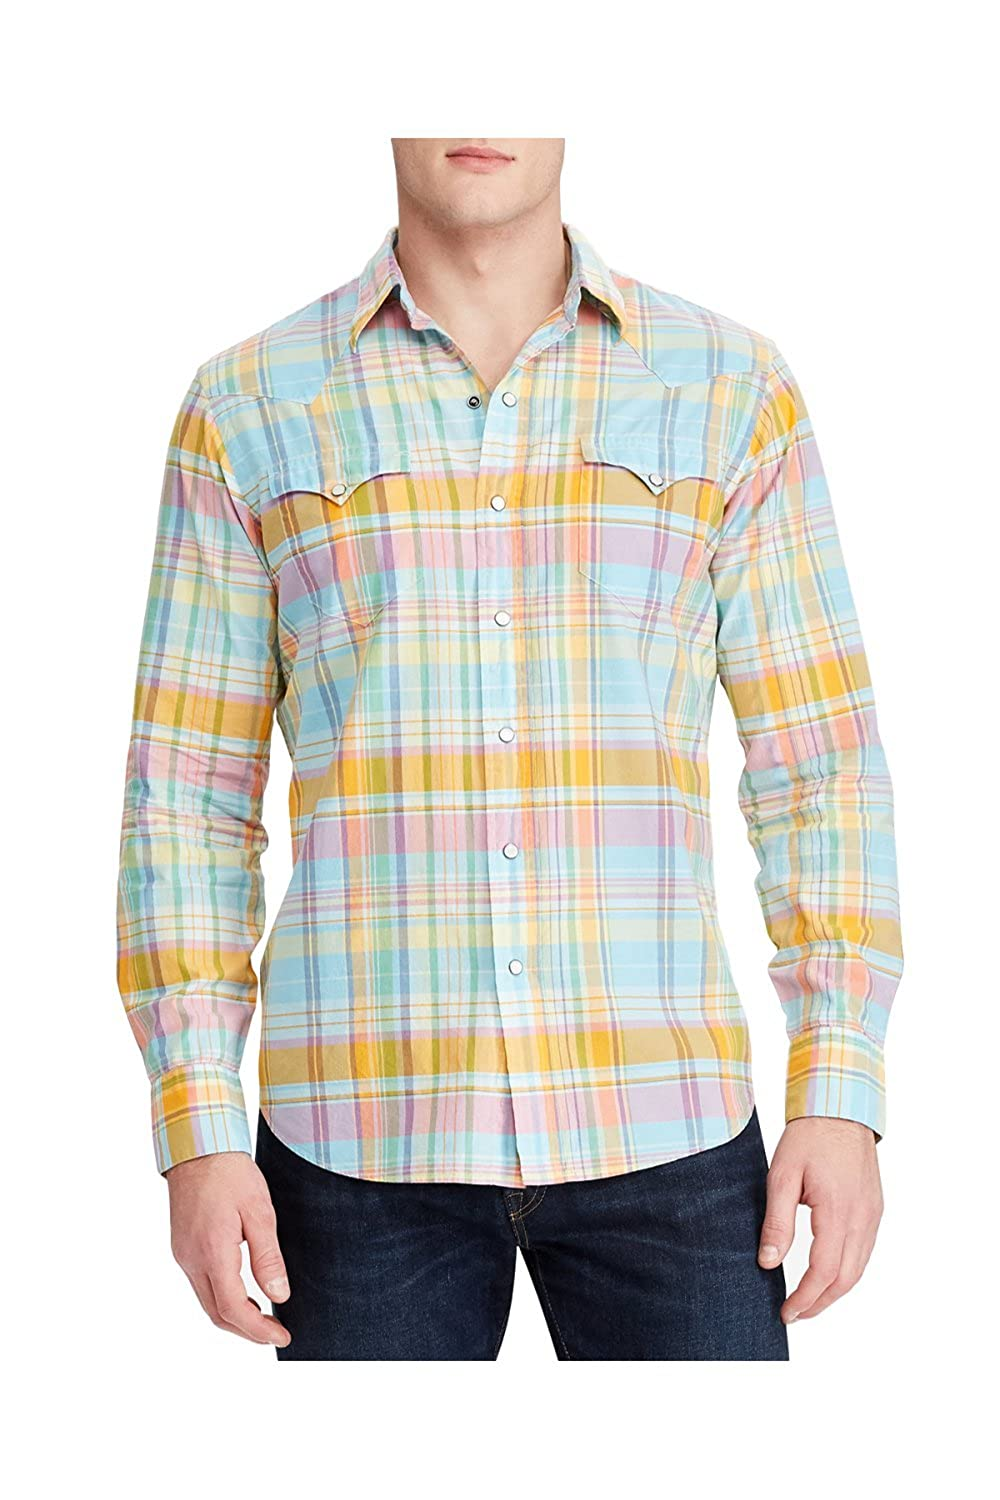 Western Polo Plaid Lauren Ralph ShirtlargeOrangeAt Men's tsdhrQCBx